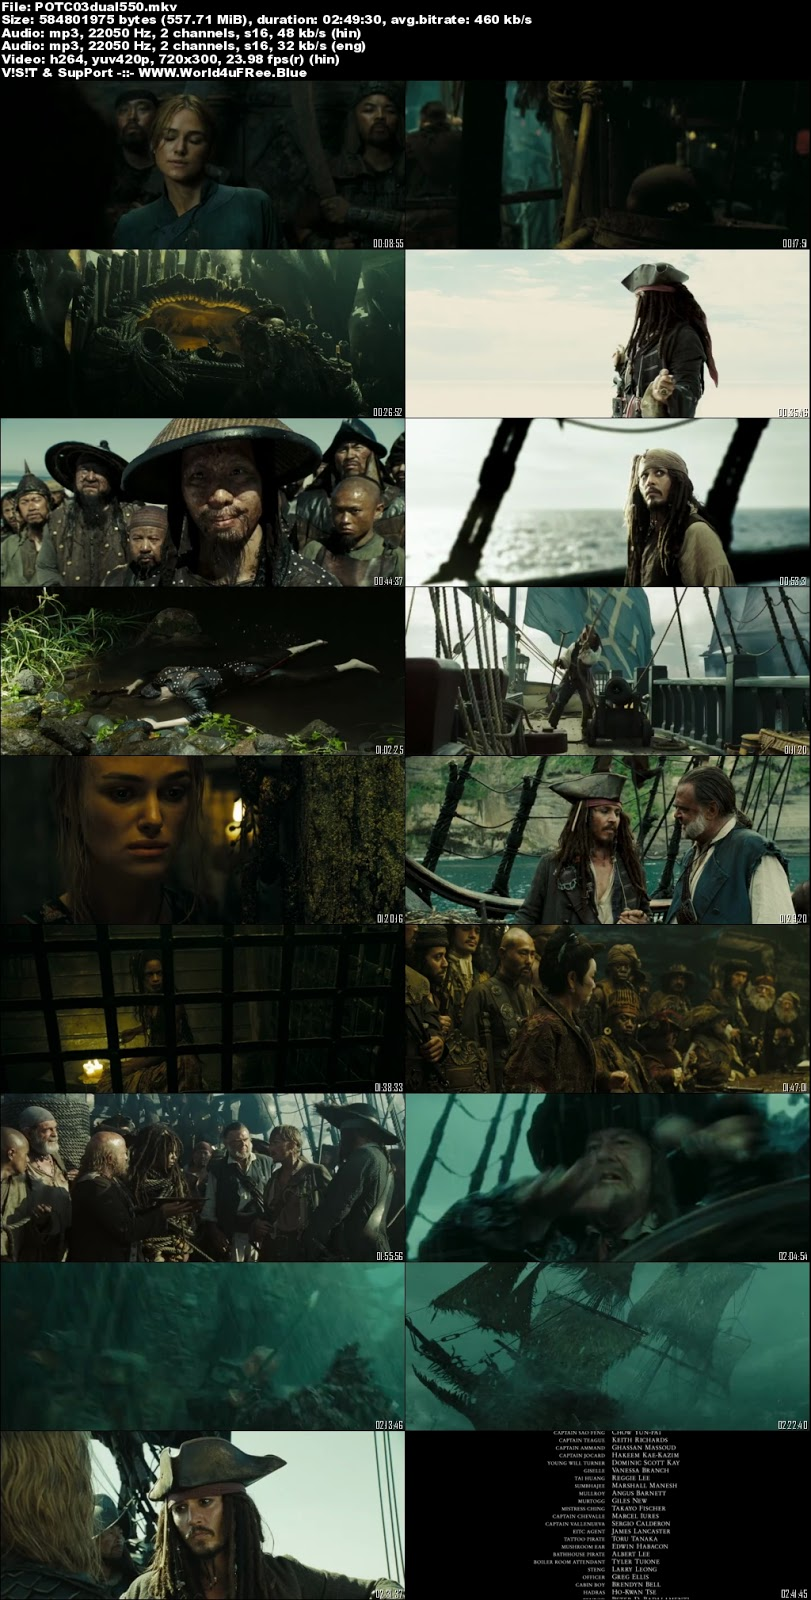 Pirates of the Caribbean: At World's End (2007) Full Movie in Hindi Dubbed | (Part 2) | 1080p